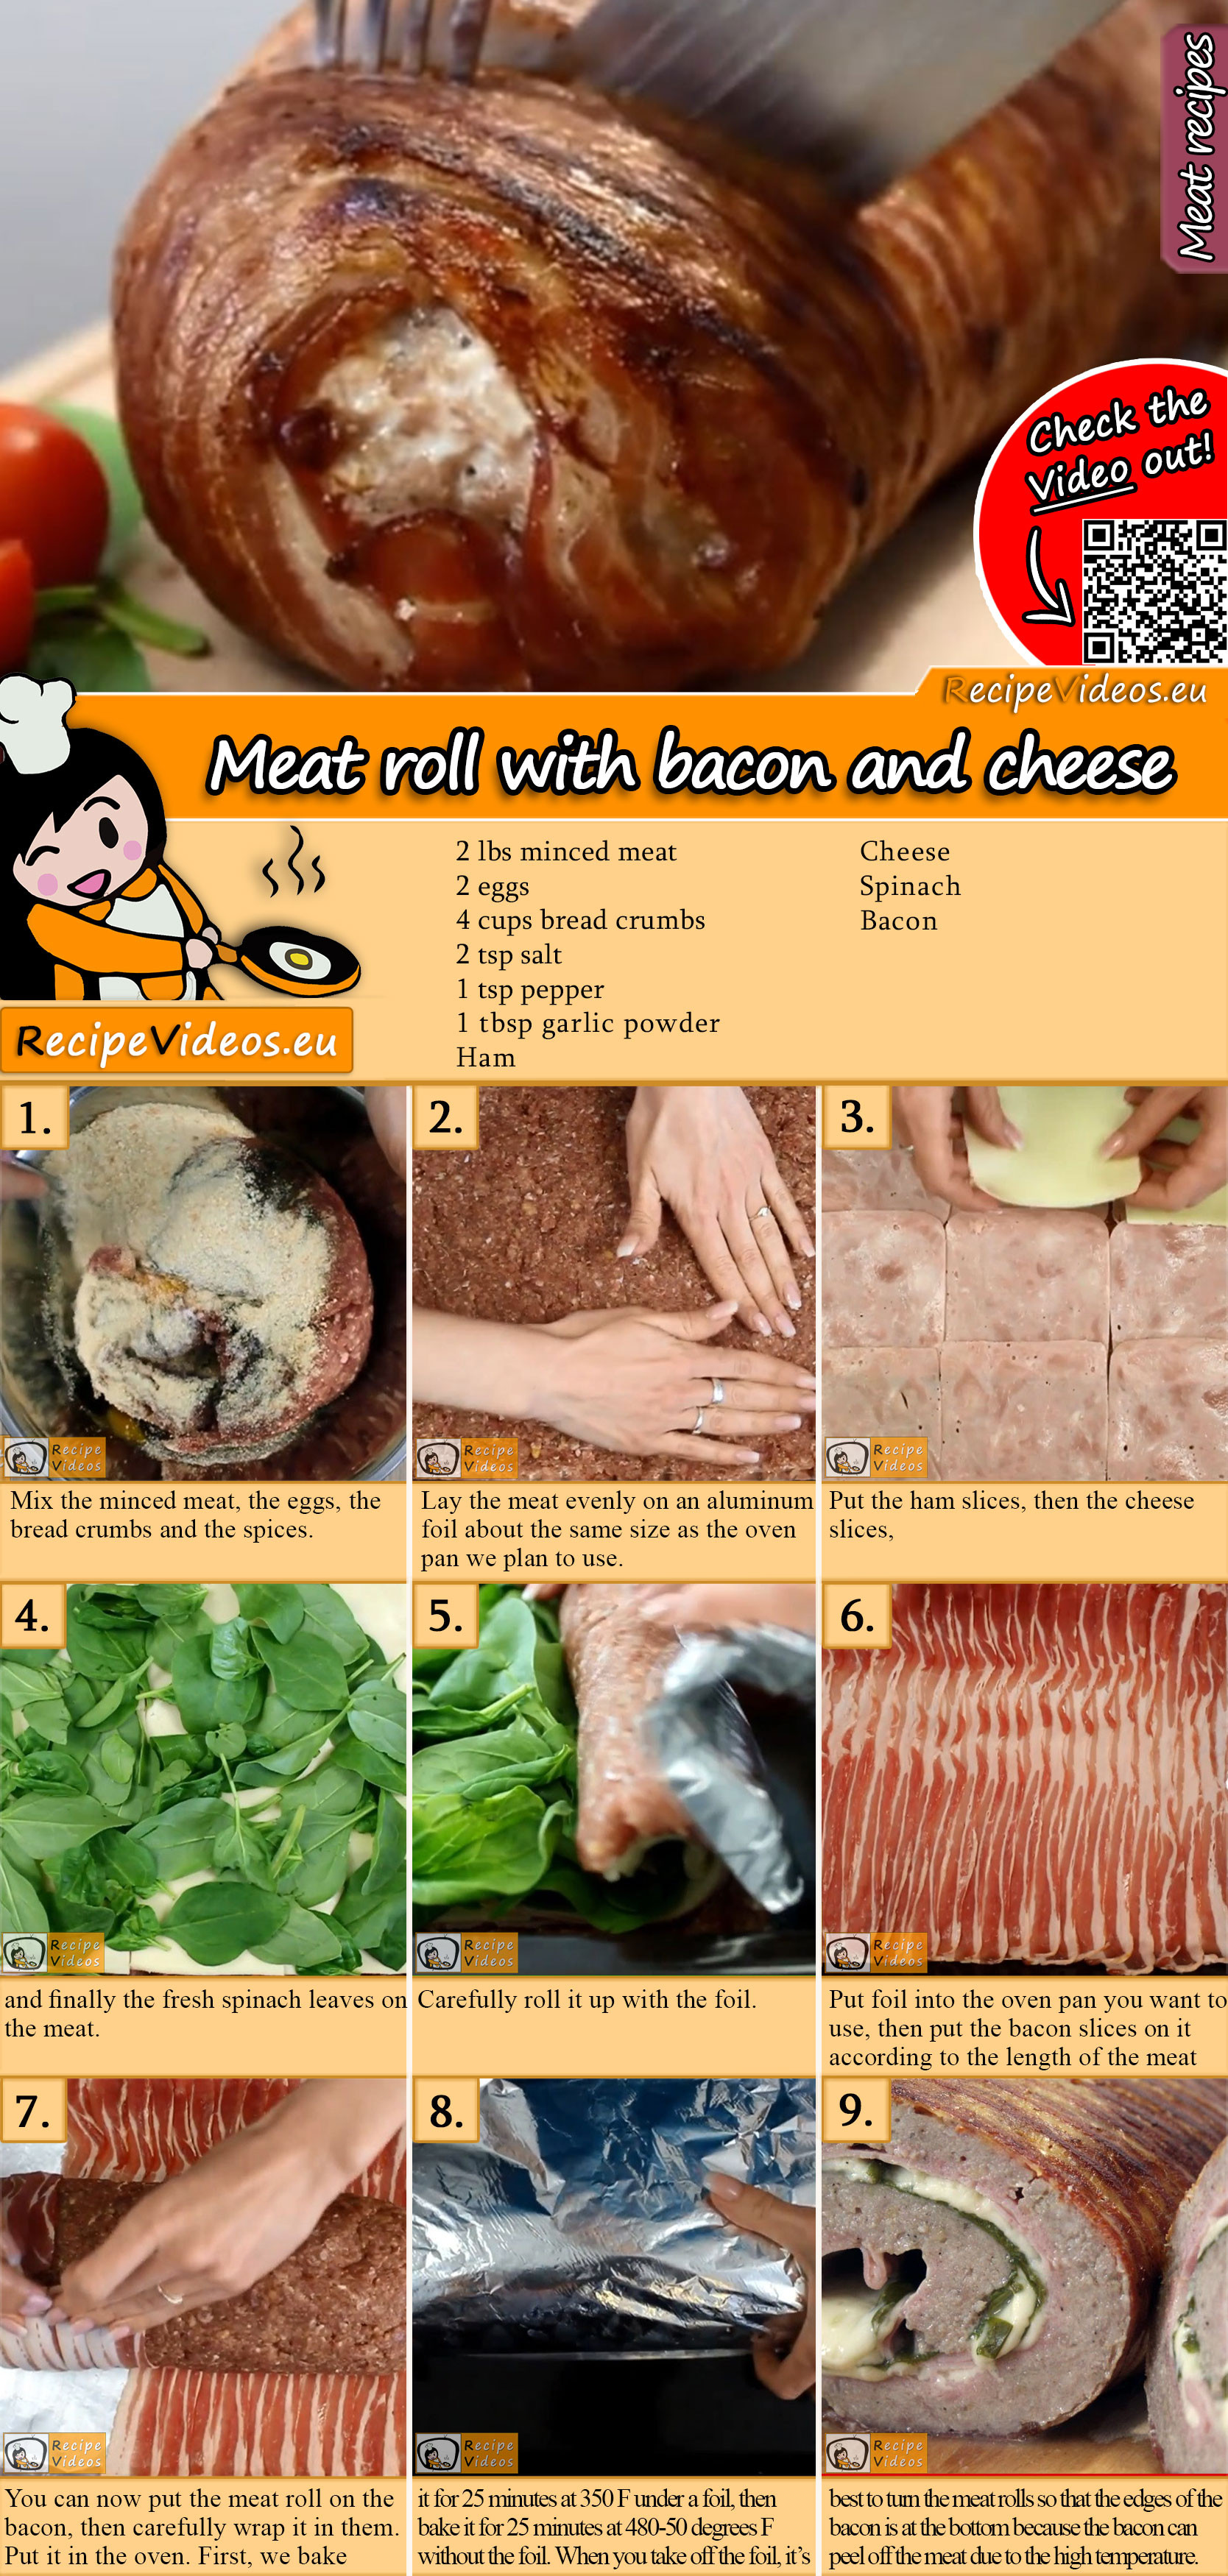 Meat roll with bacon and cheese recipe with video